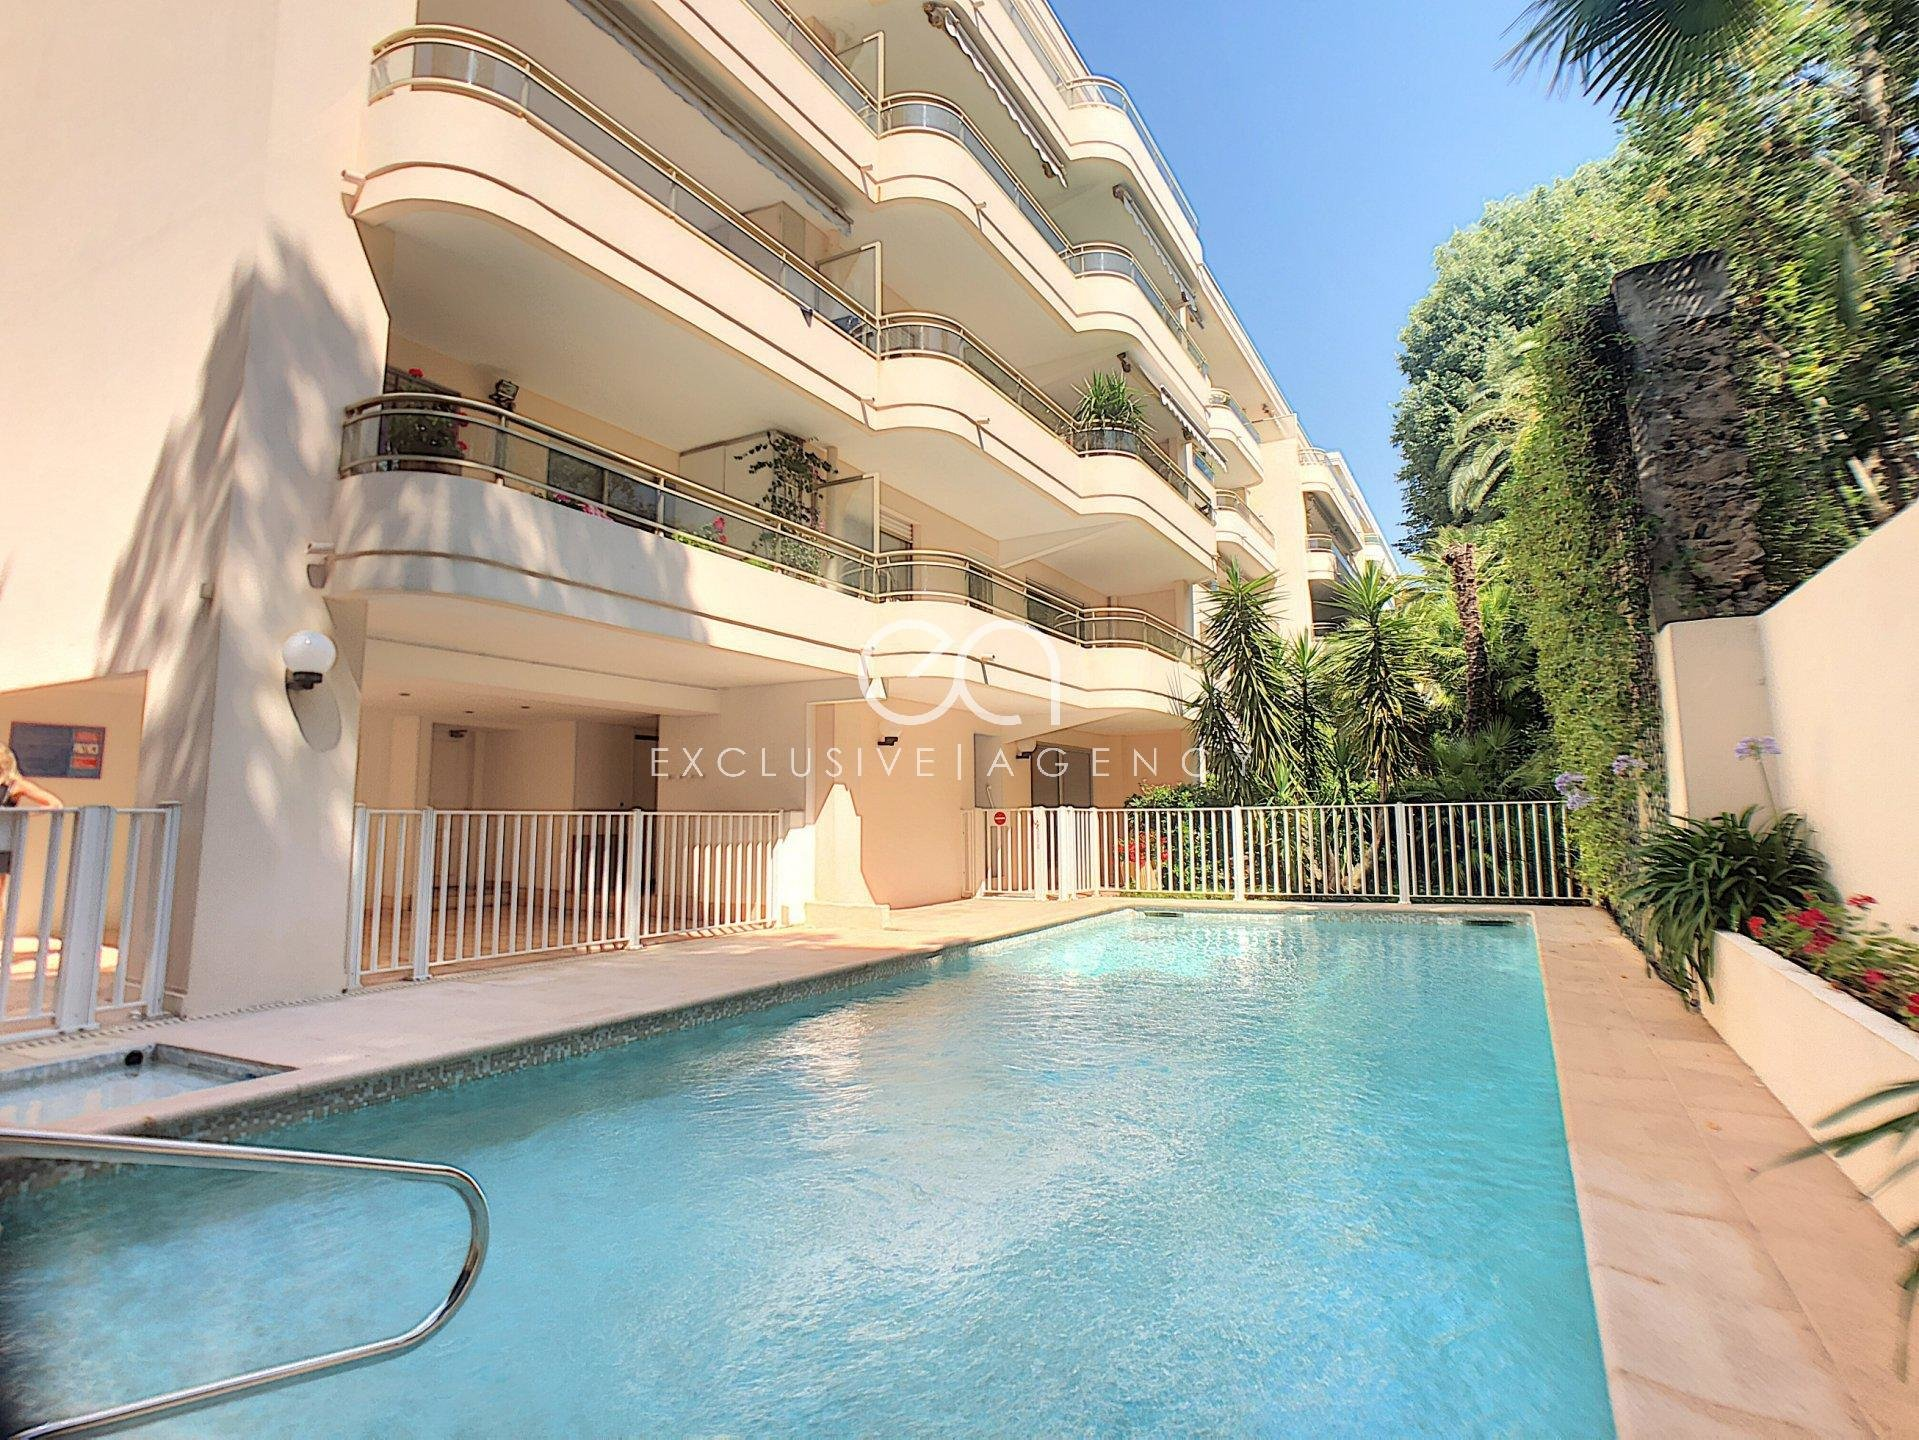 LONG TERM RENTAL Cannes downtown 2 rooms 50sqm with 20m2 terrace and garage